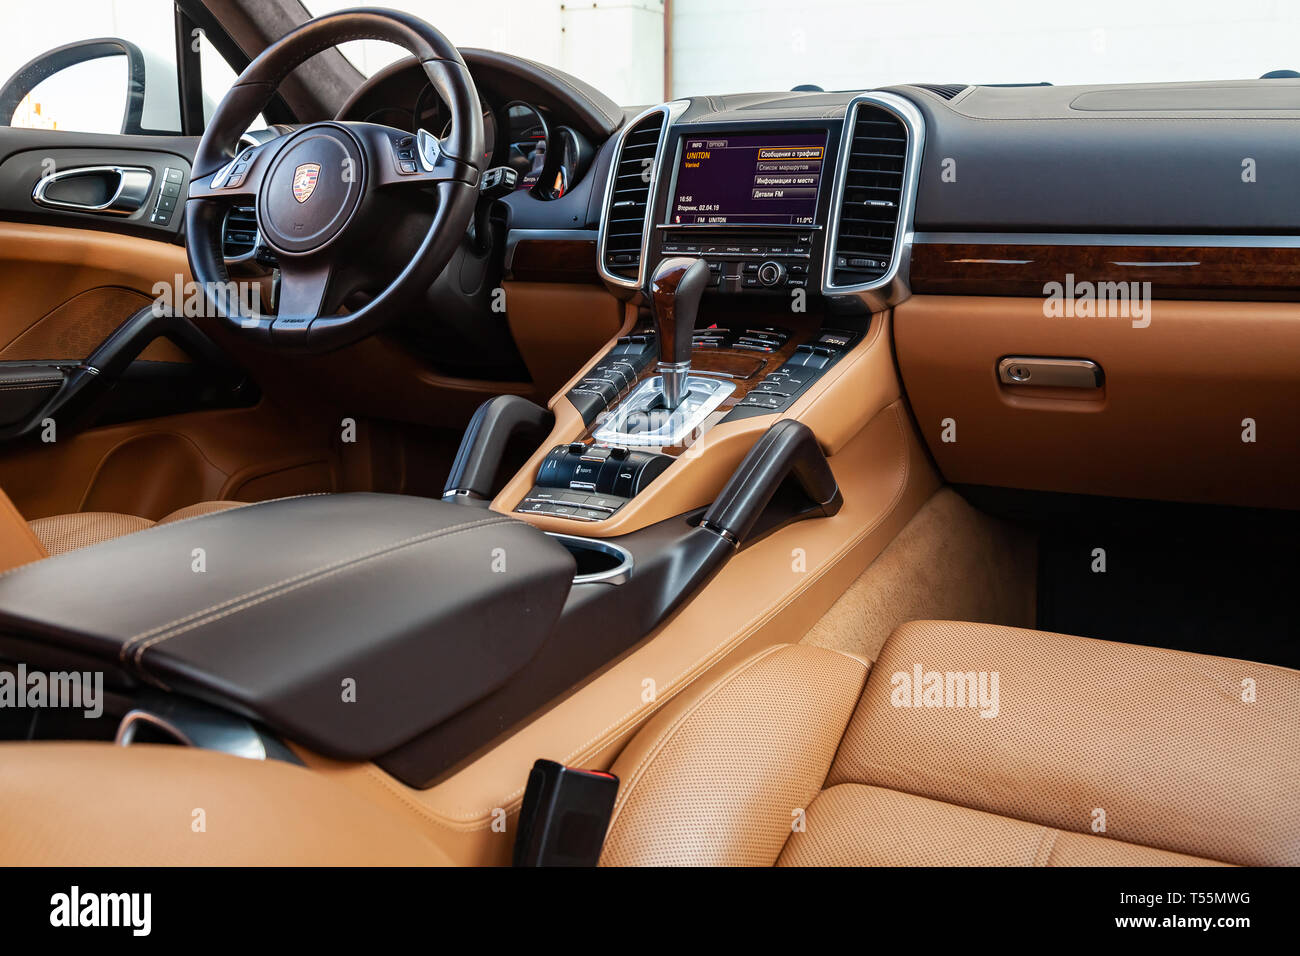 Novosibirsk, Russia - 04.12.2019: The interior of the car Porsche Cayenne 958 2011 year with a view of the steering wheel, dashboard, seats and multim - Stock Image